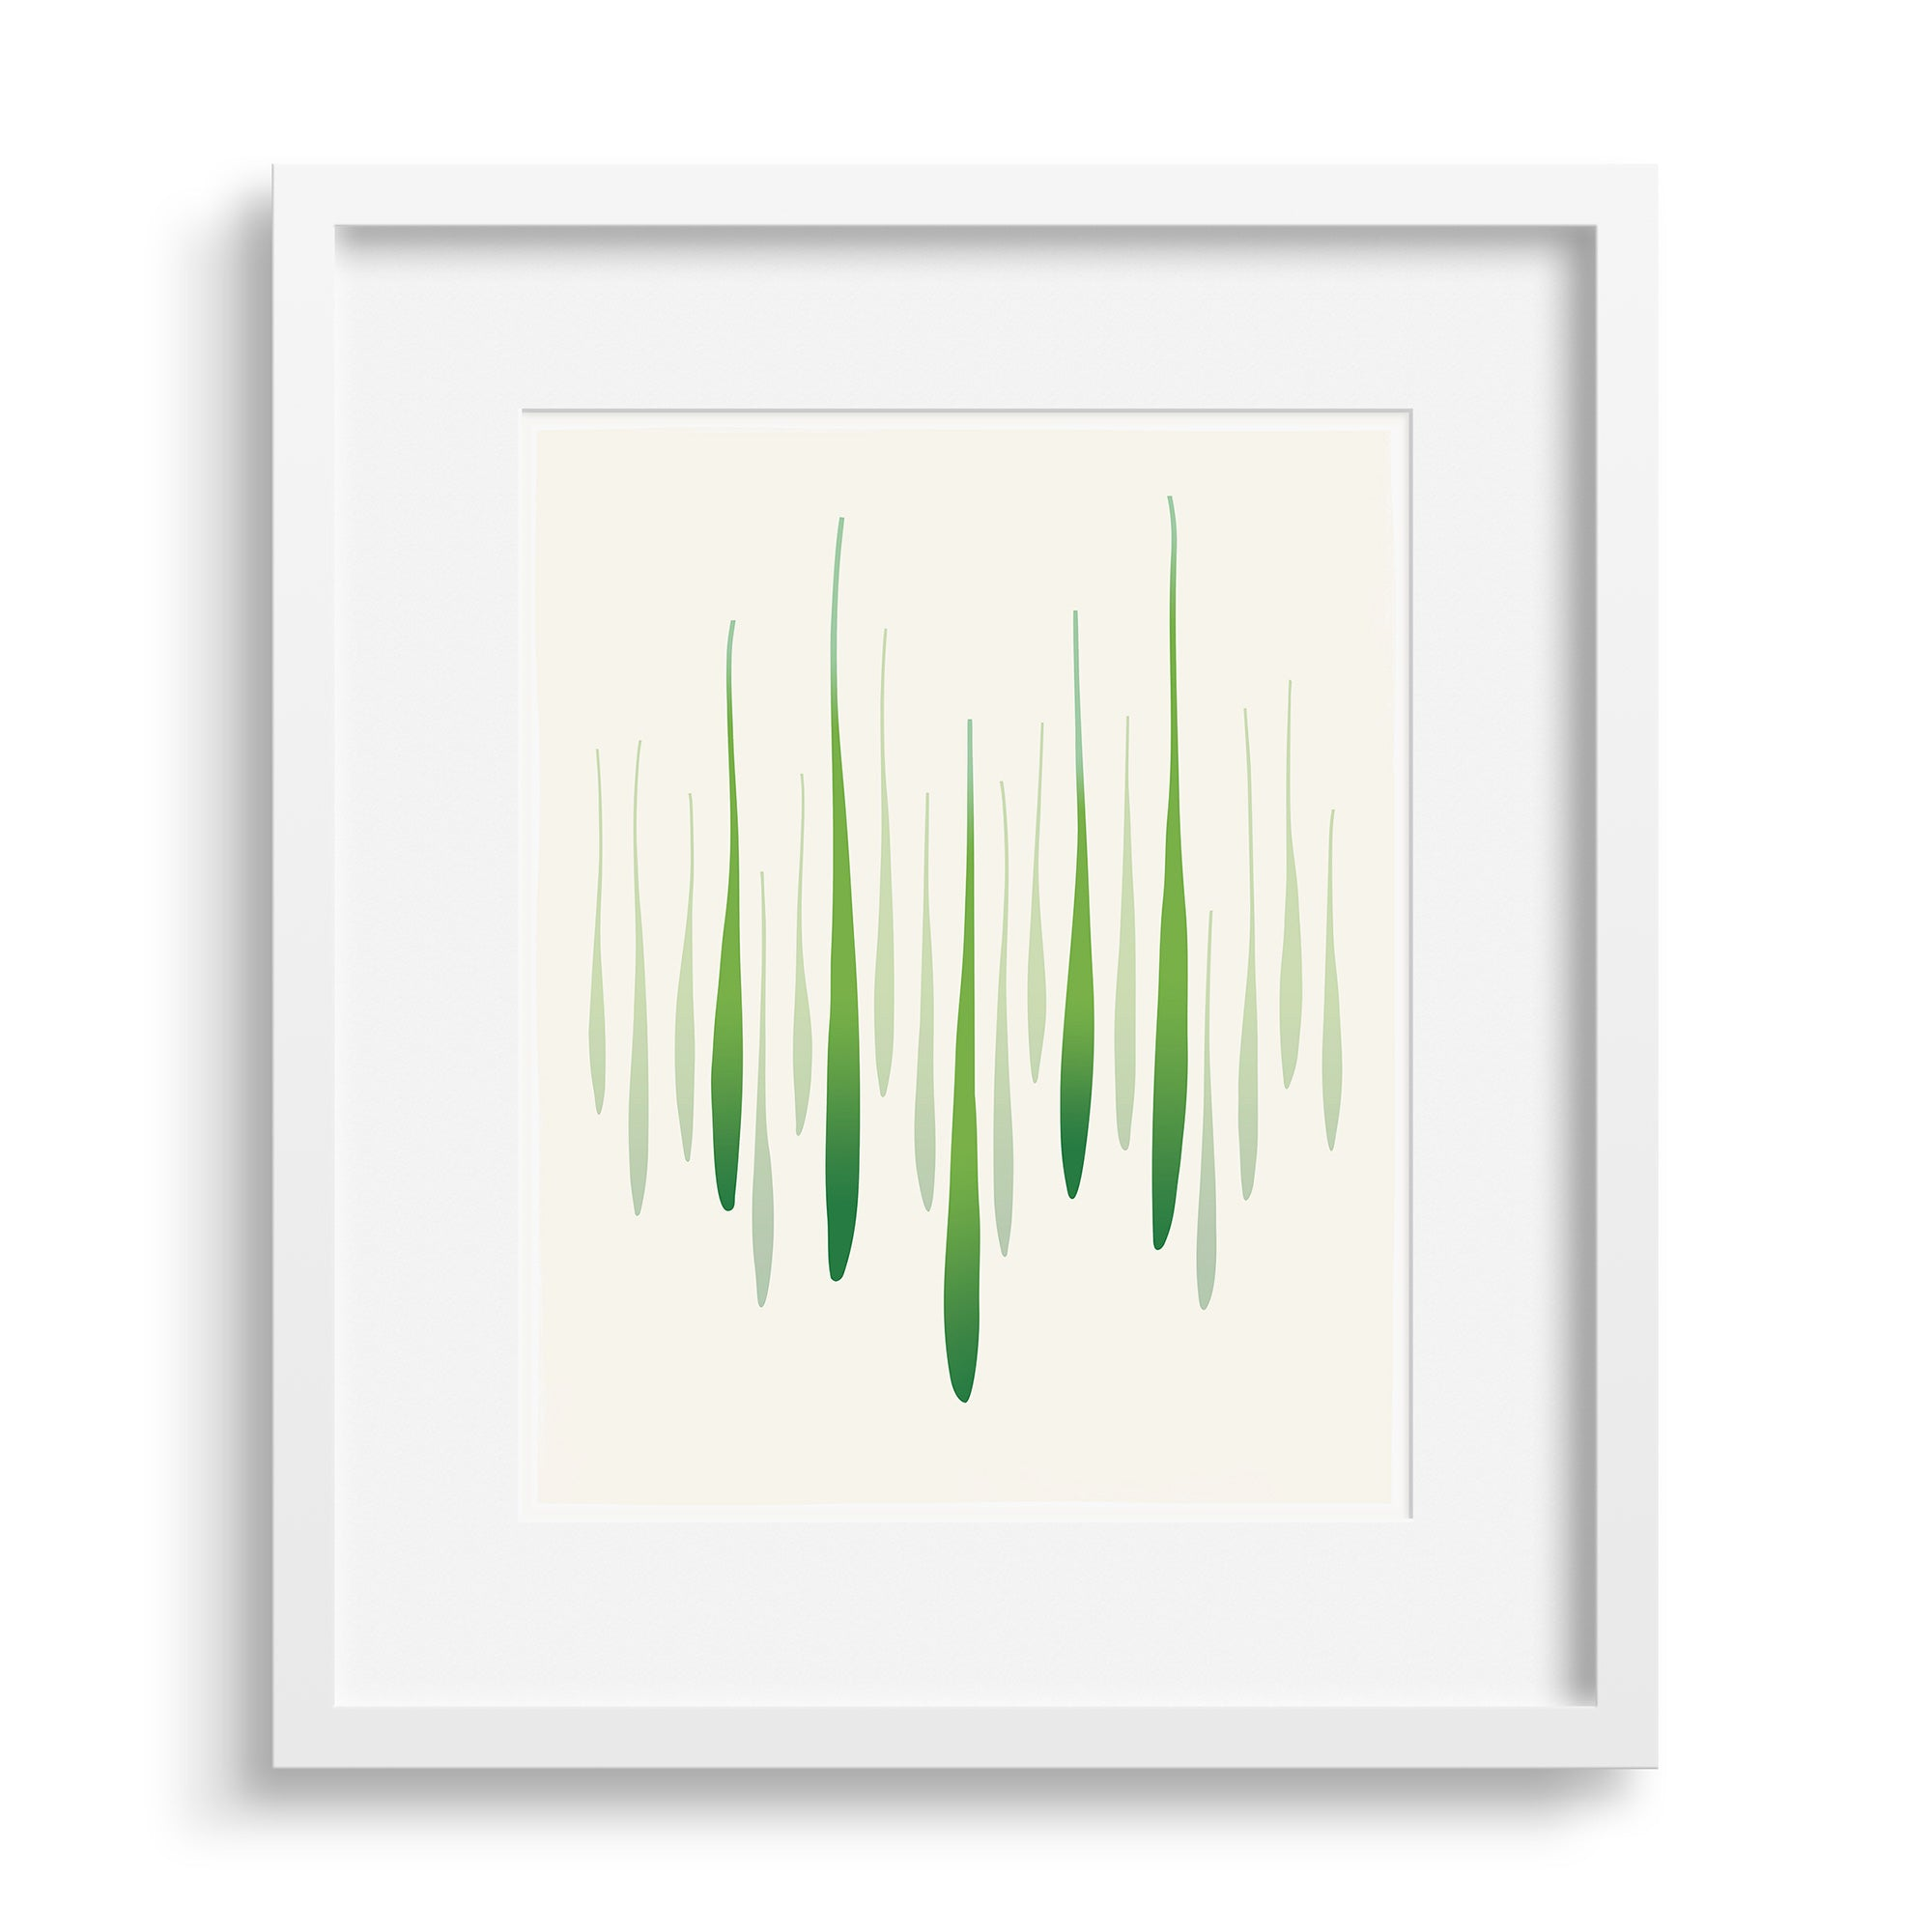 White framed version of a limited edition fine art print that captures the energy and greens of spring in graphic form, by Janet Taylor | Household Art.